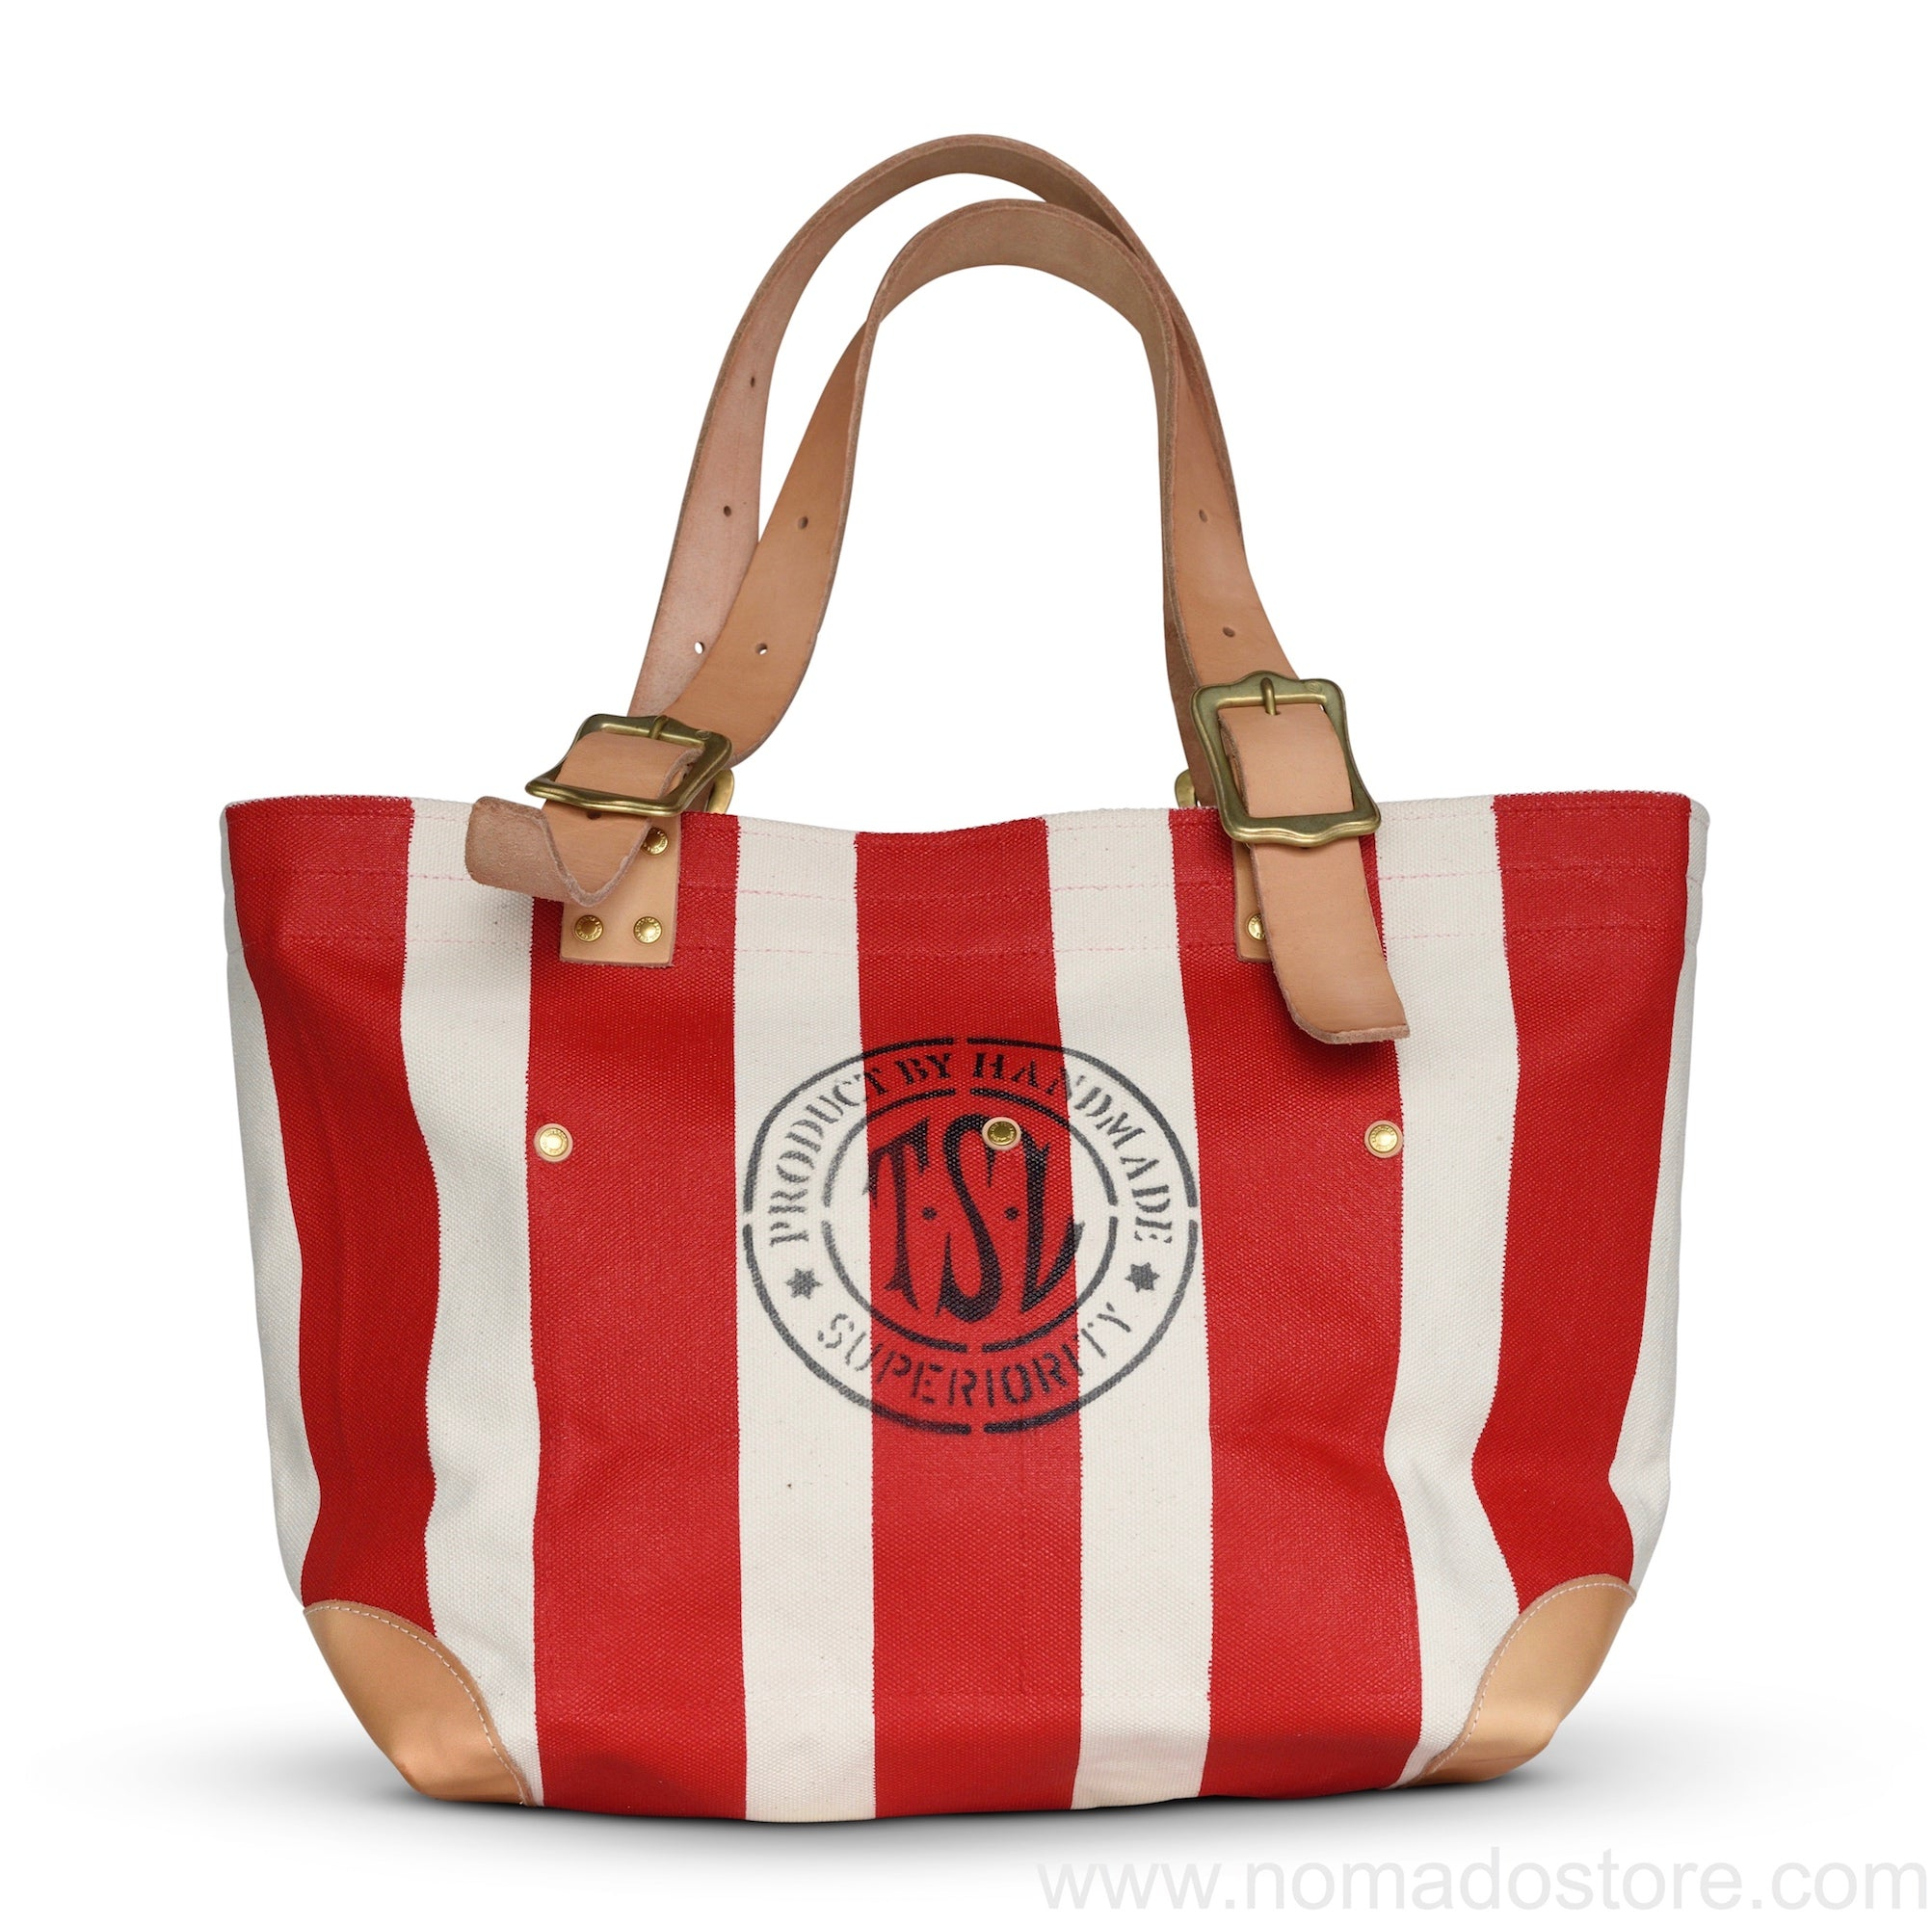 737cec006cc The Superior Labor Ltd Edition Engineer Tote bag S (red) - NOMADO Store